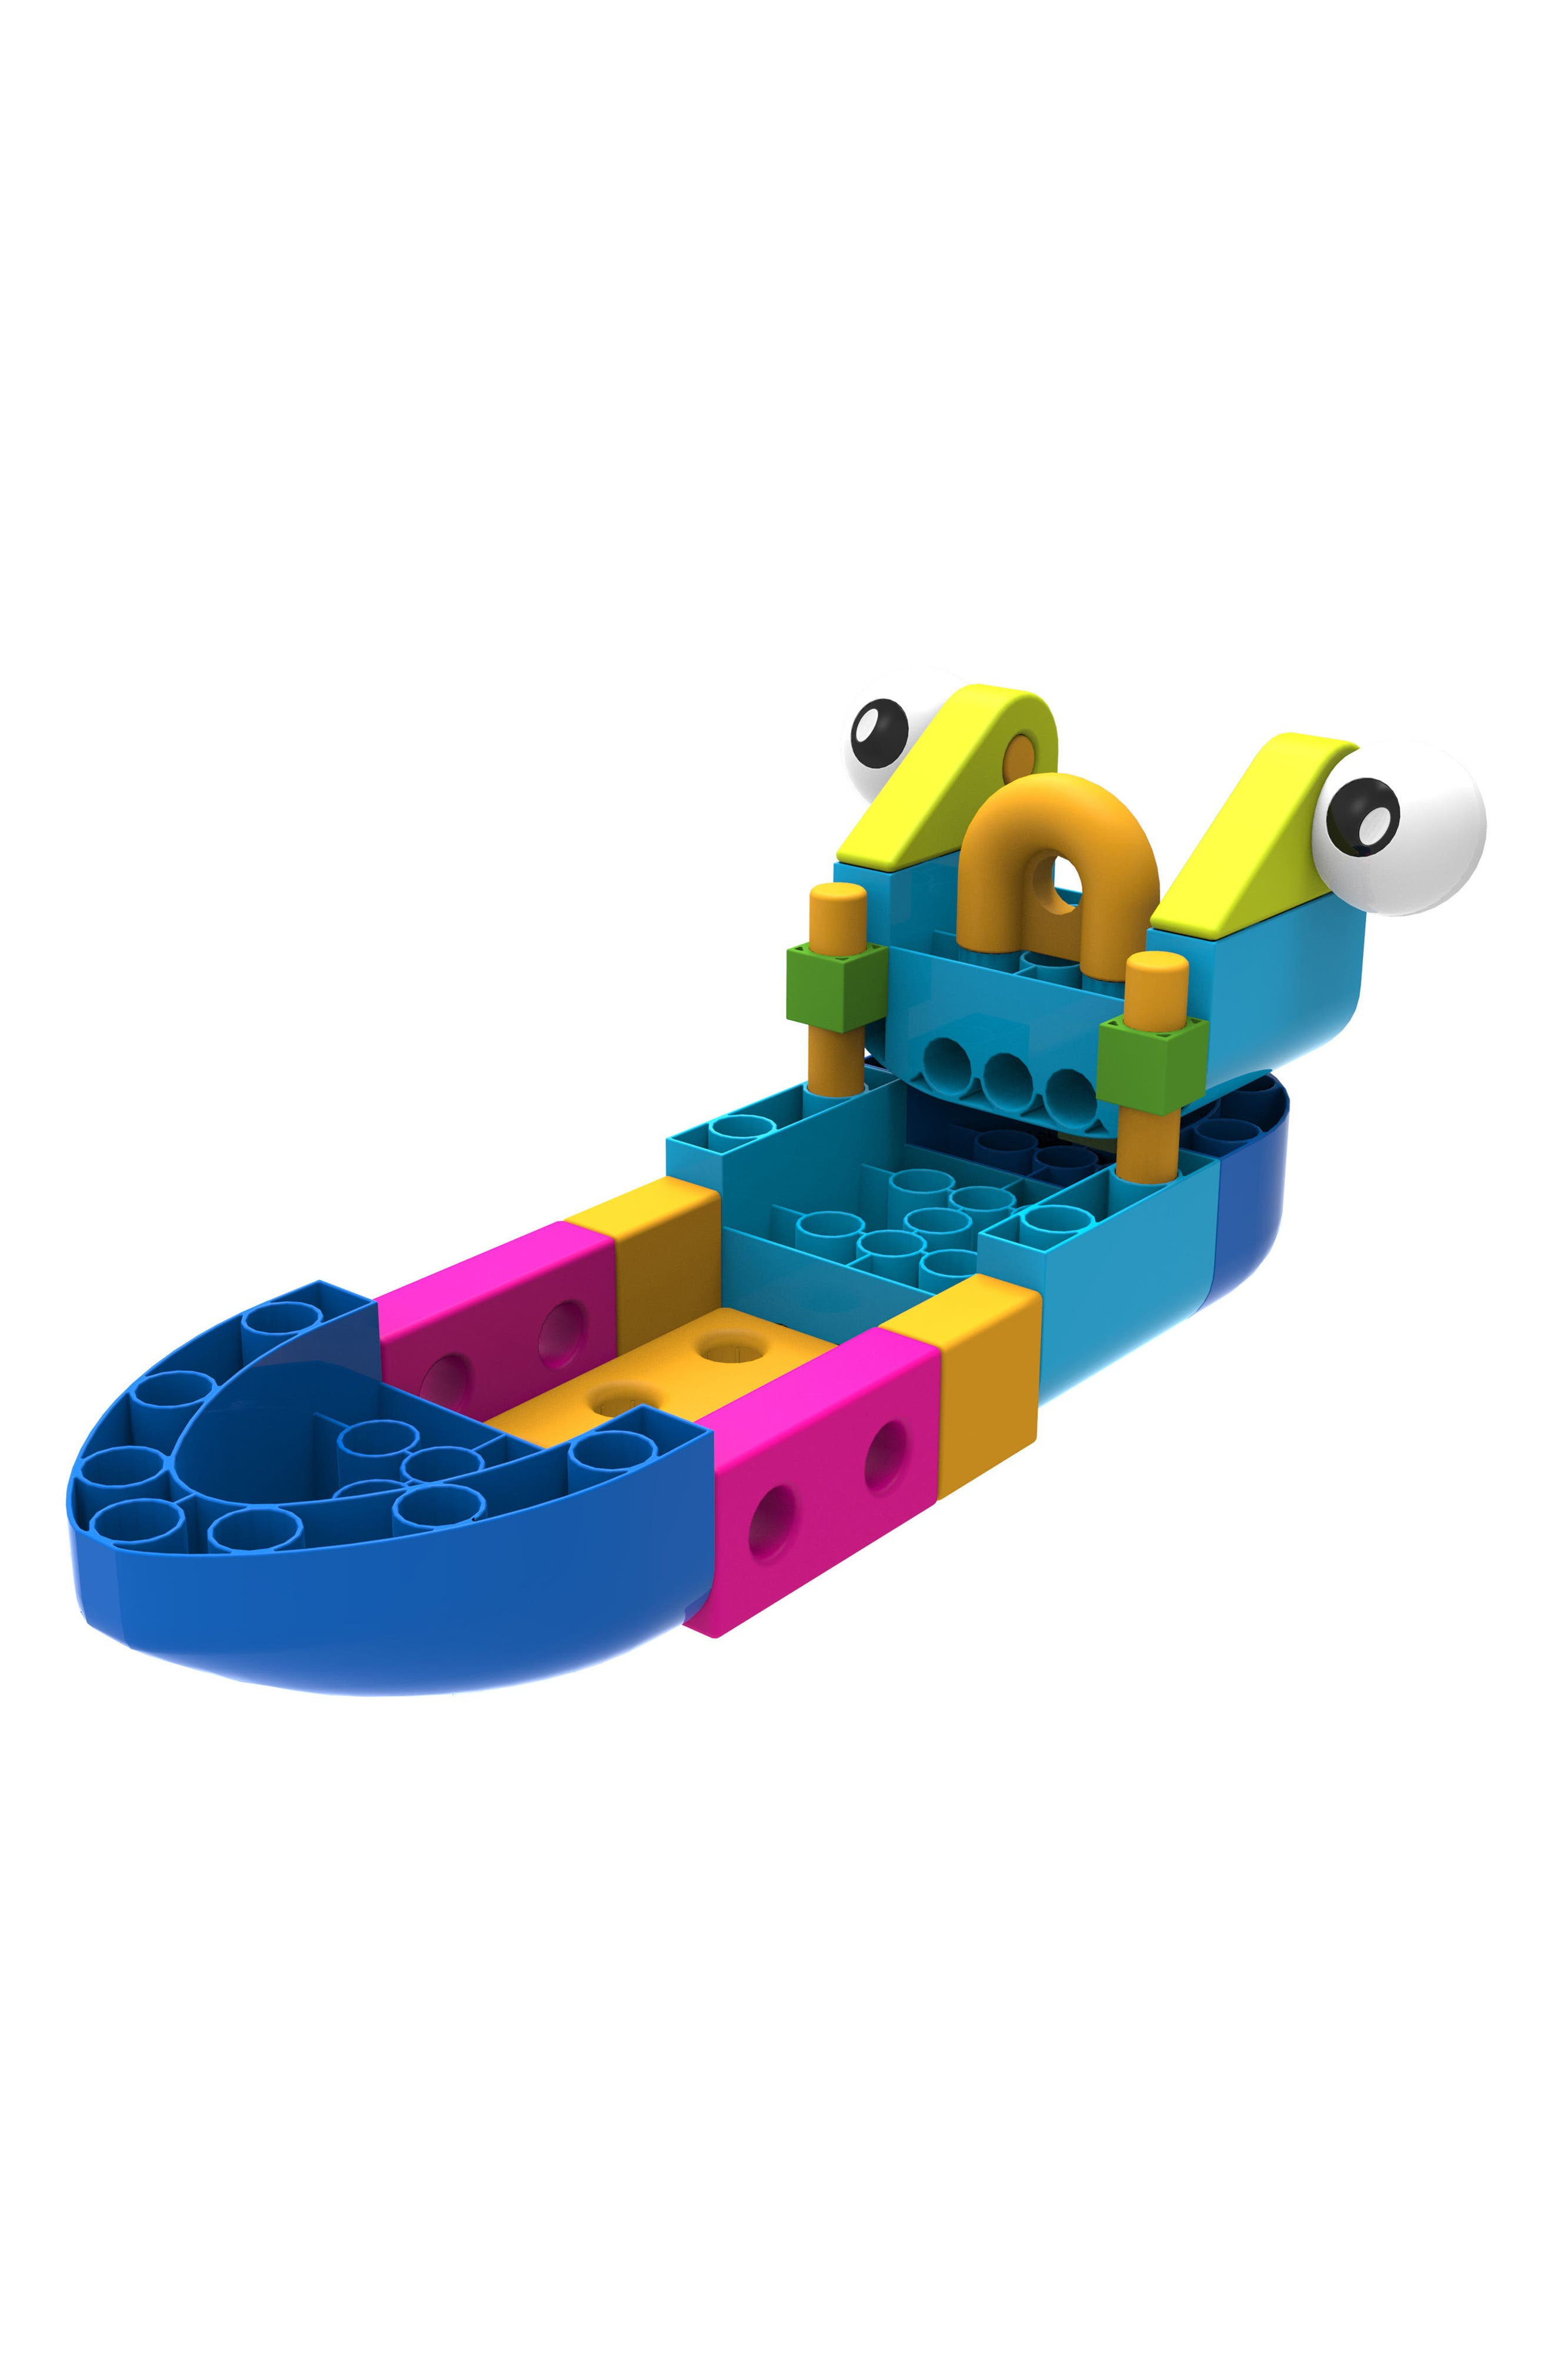 Boat Engineer Kit with Storybook,                             Alternate thumbnail 11, color,                             Multi